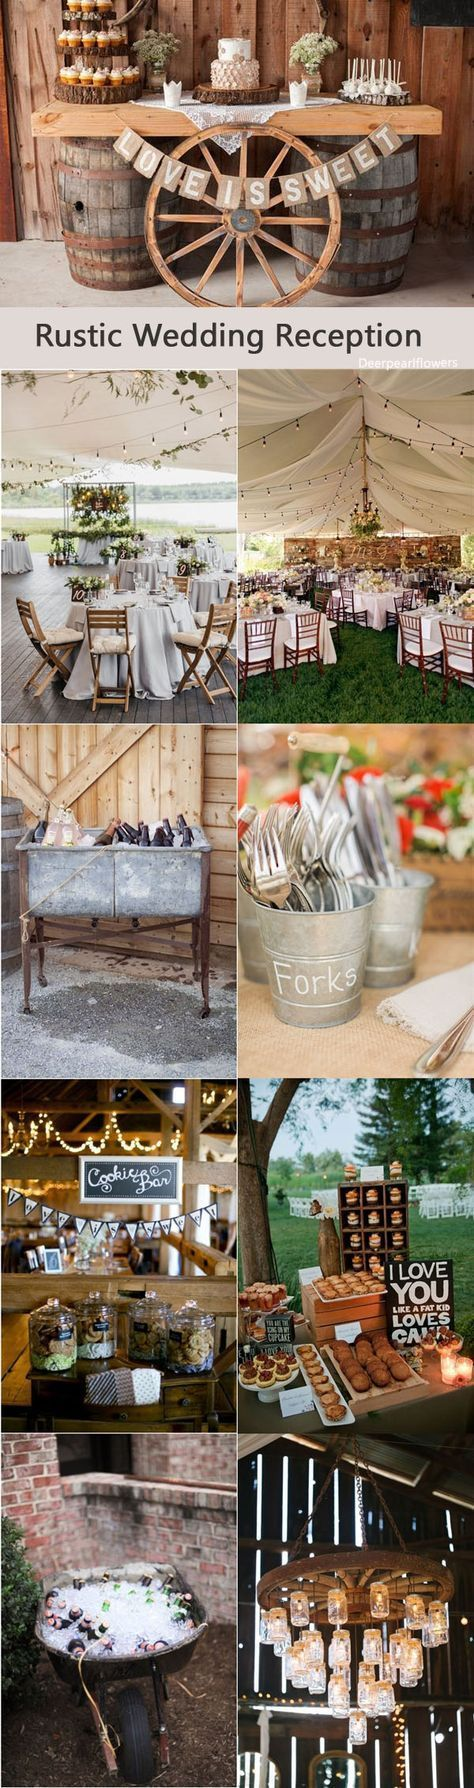 ideas for rustic wedding reception%0A Rustic country wedding reception decor ideas    http   www deerpearlflowers com